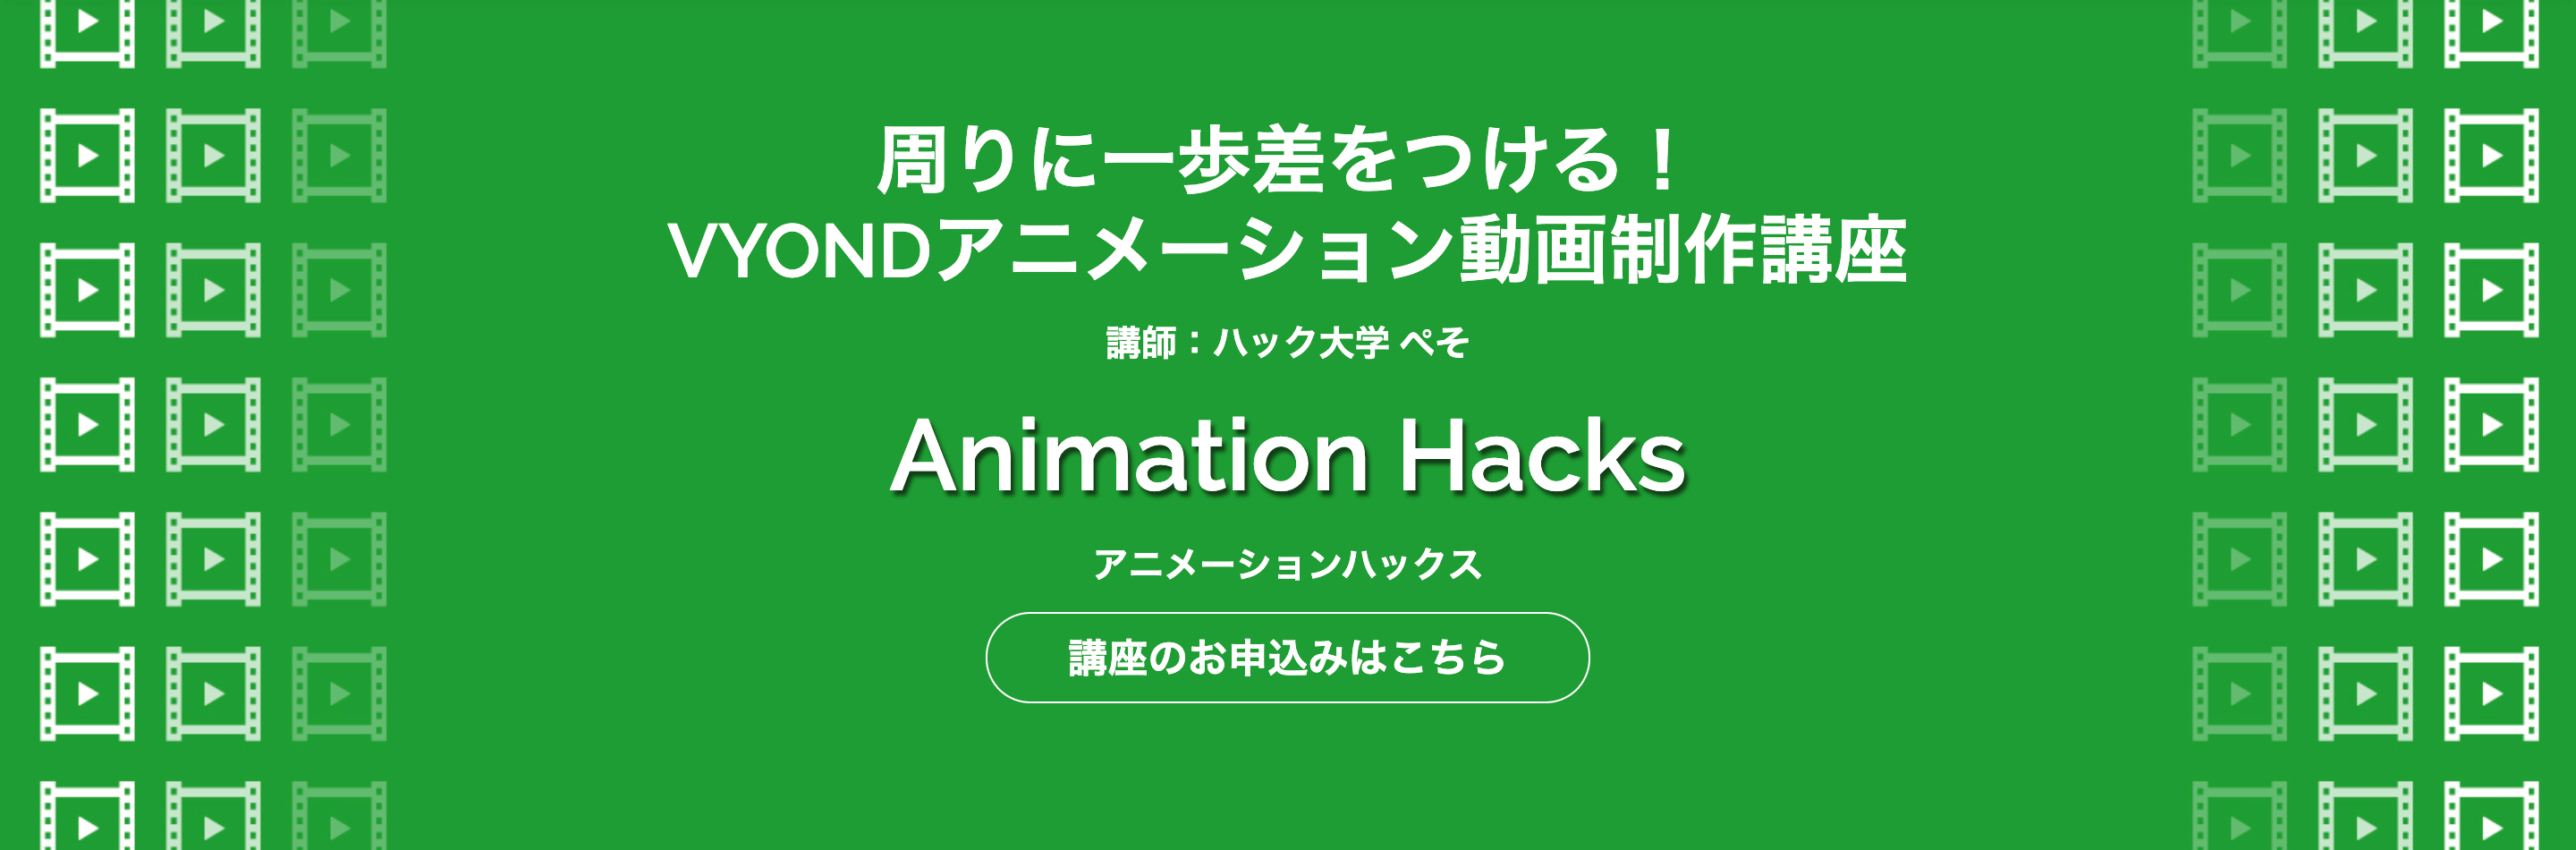 Animation Hacks